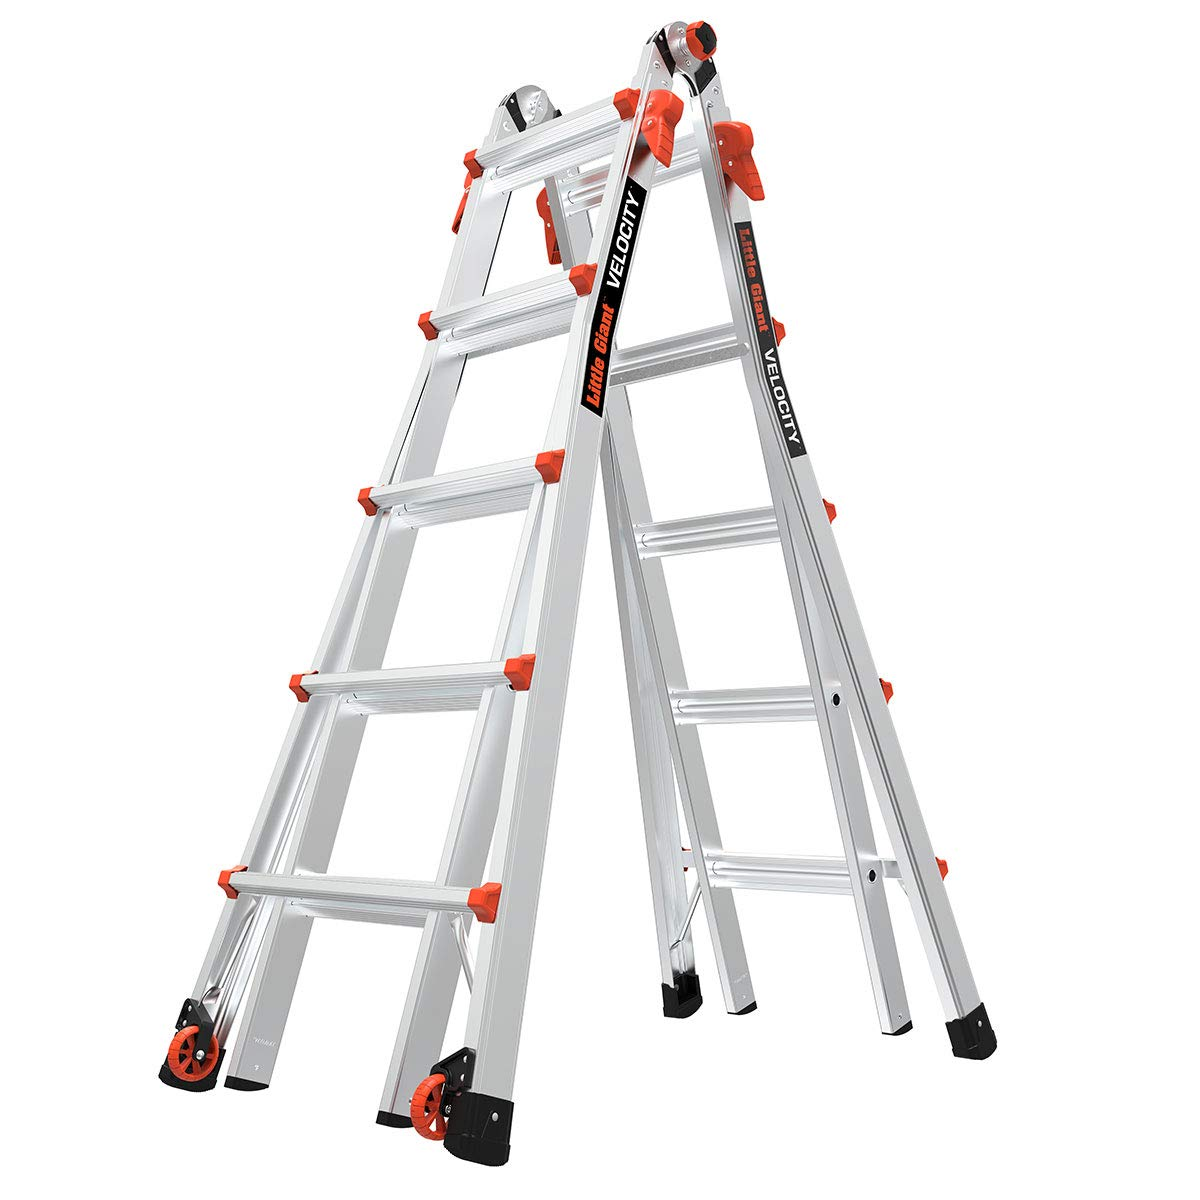 The Best multi-position ladder - Our pick